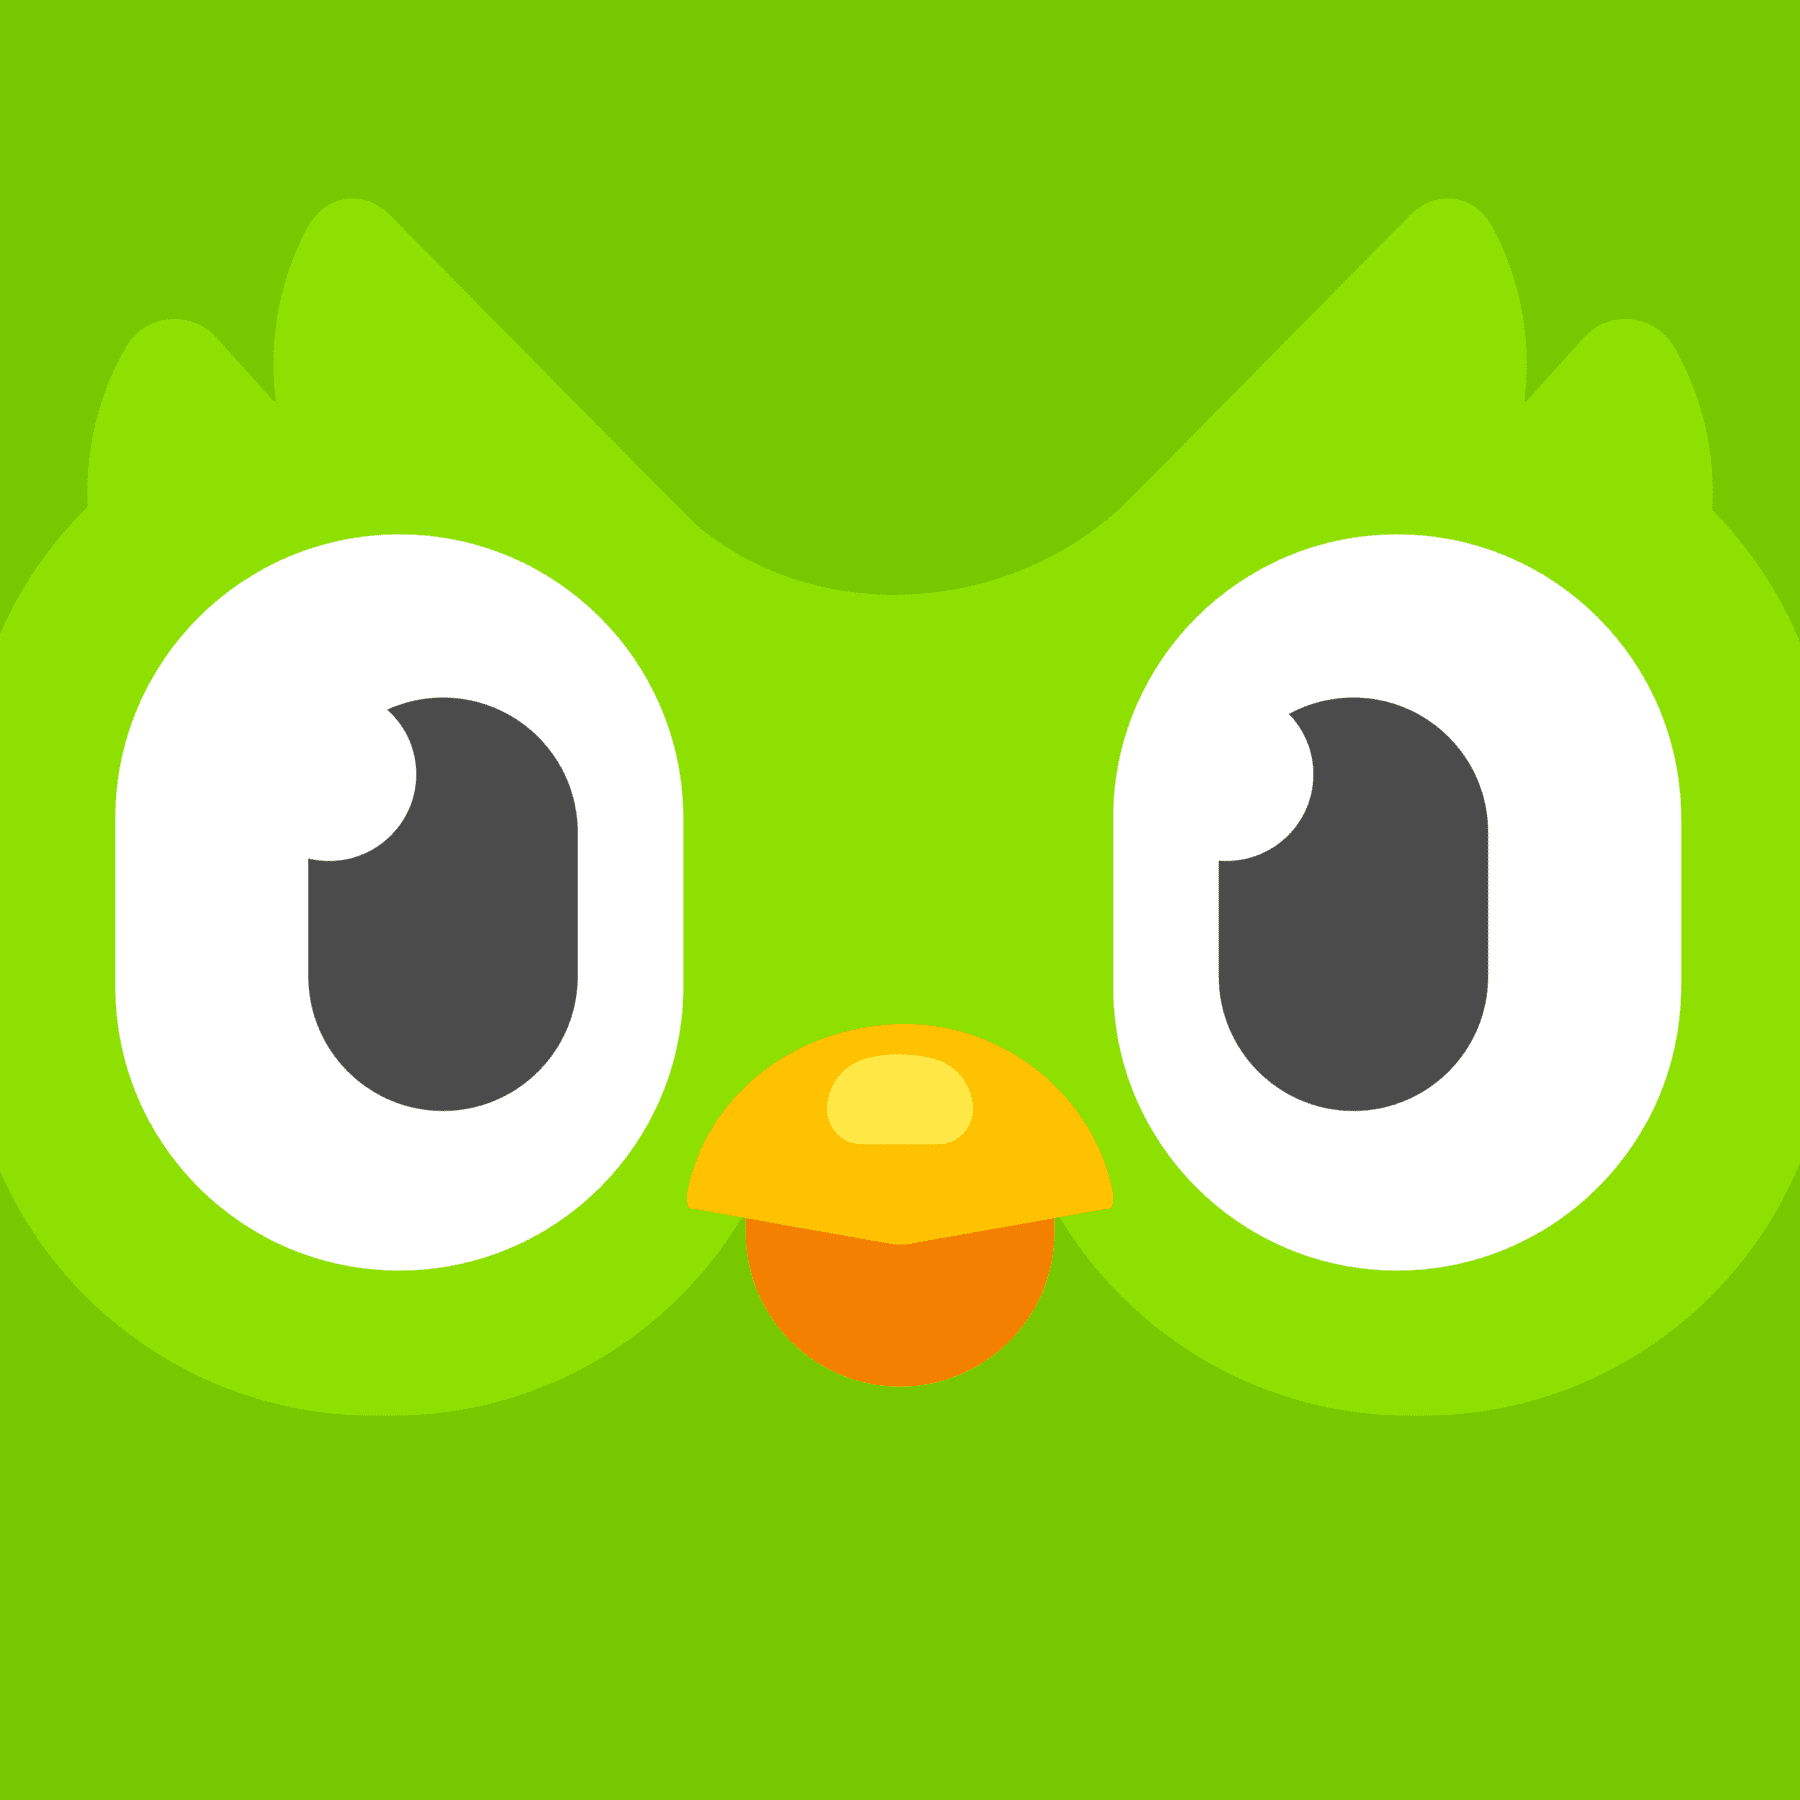 Practice language skills at home with Duolingo